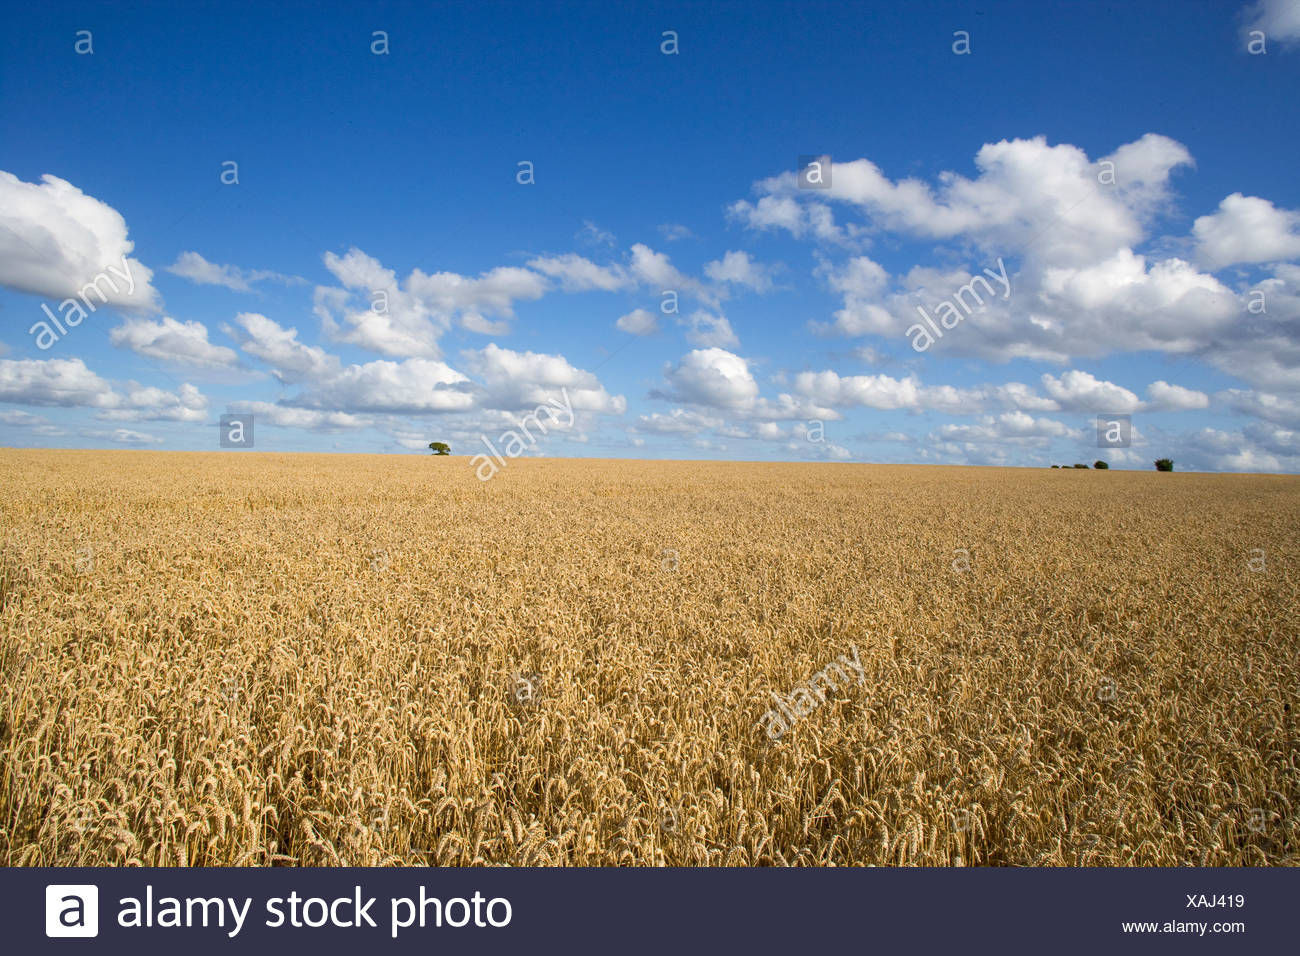 Clouds in blue sky over sunny wheat field - Stock Image